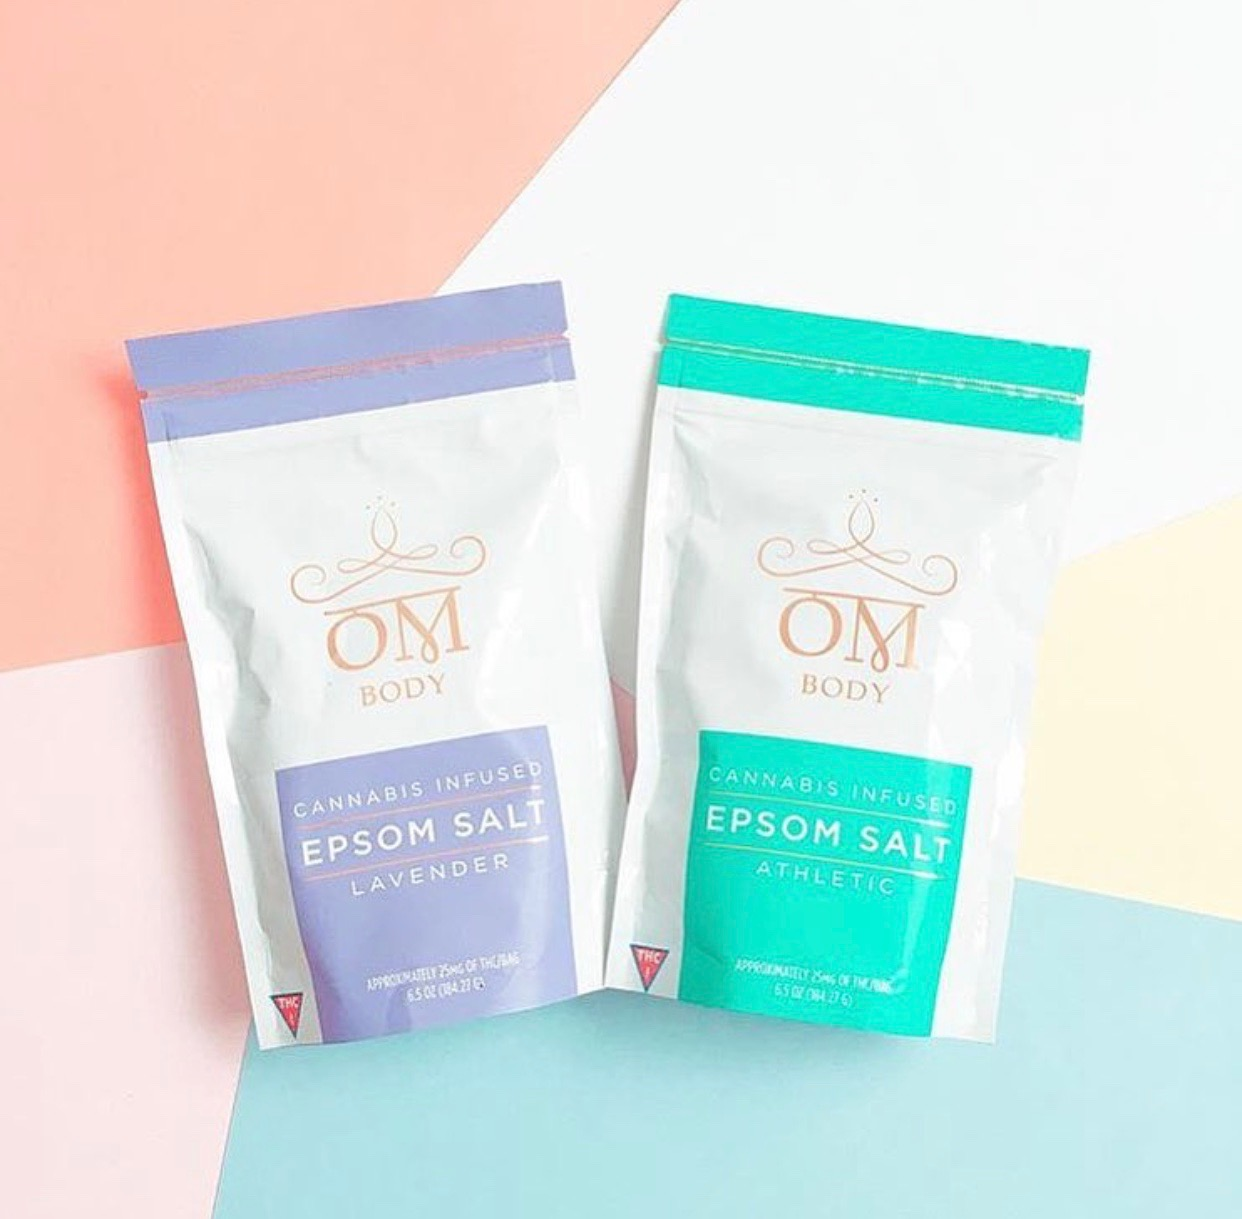 Om Body Epsom Salt   , available in Lavender and Fragrance-Free, $20    Image via    @herbarium.la